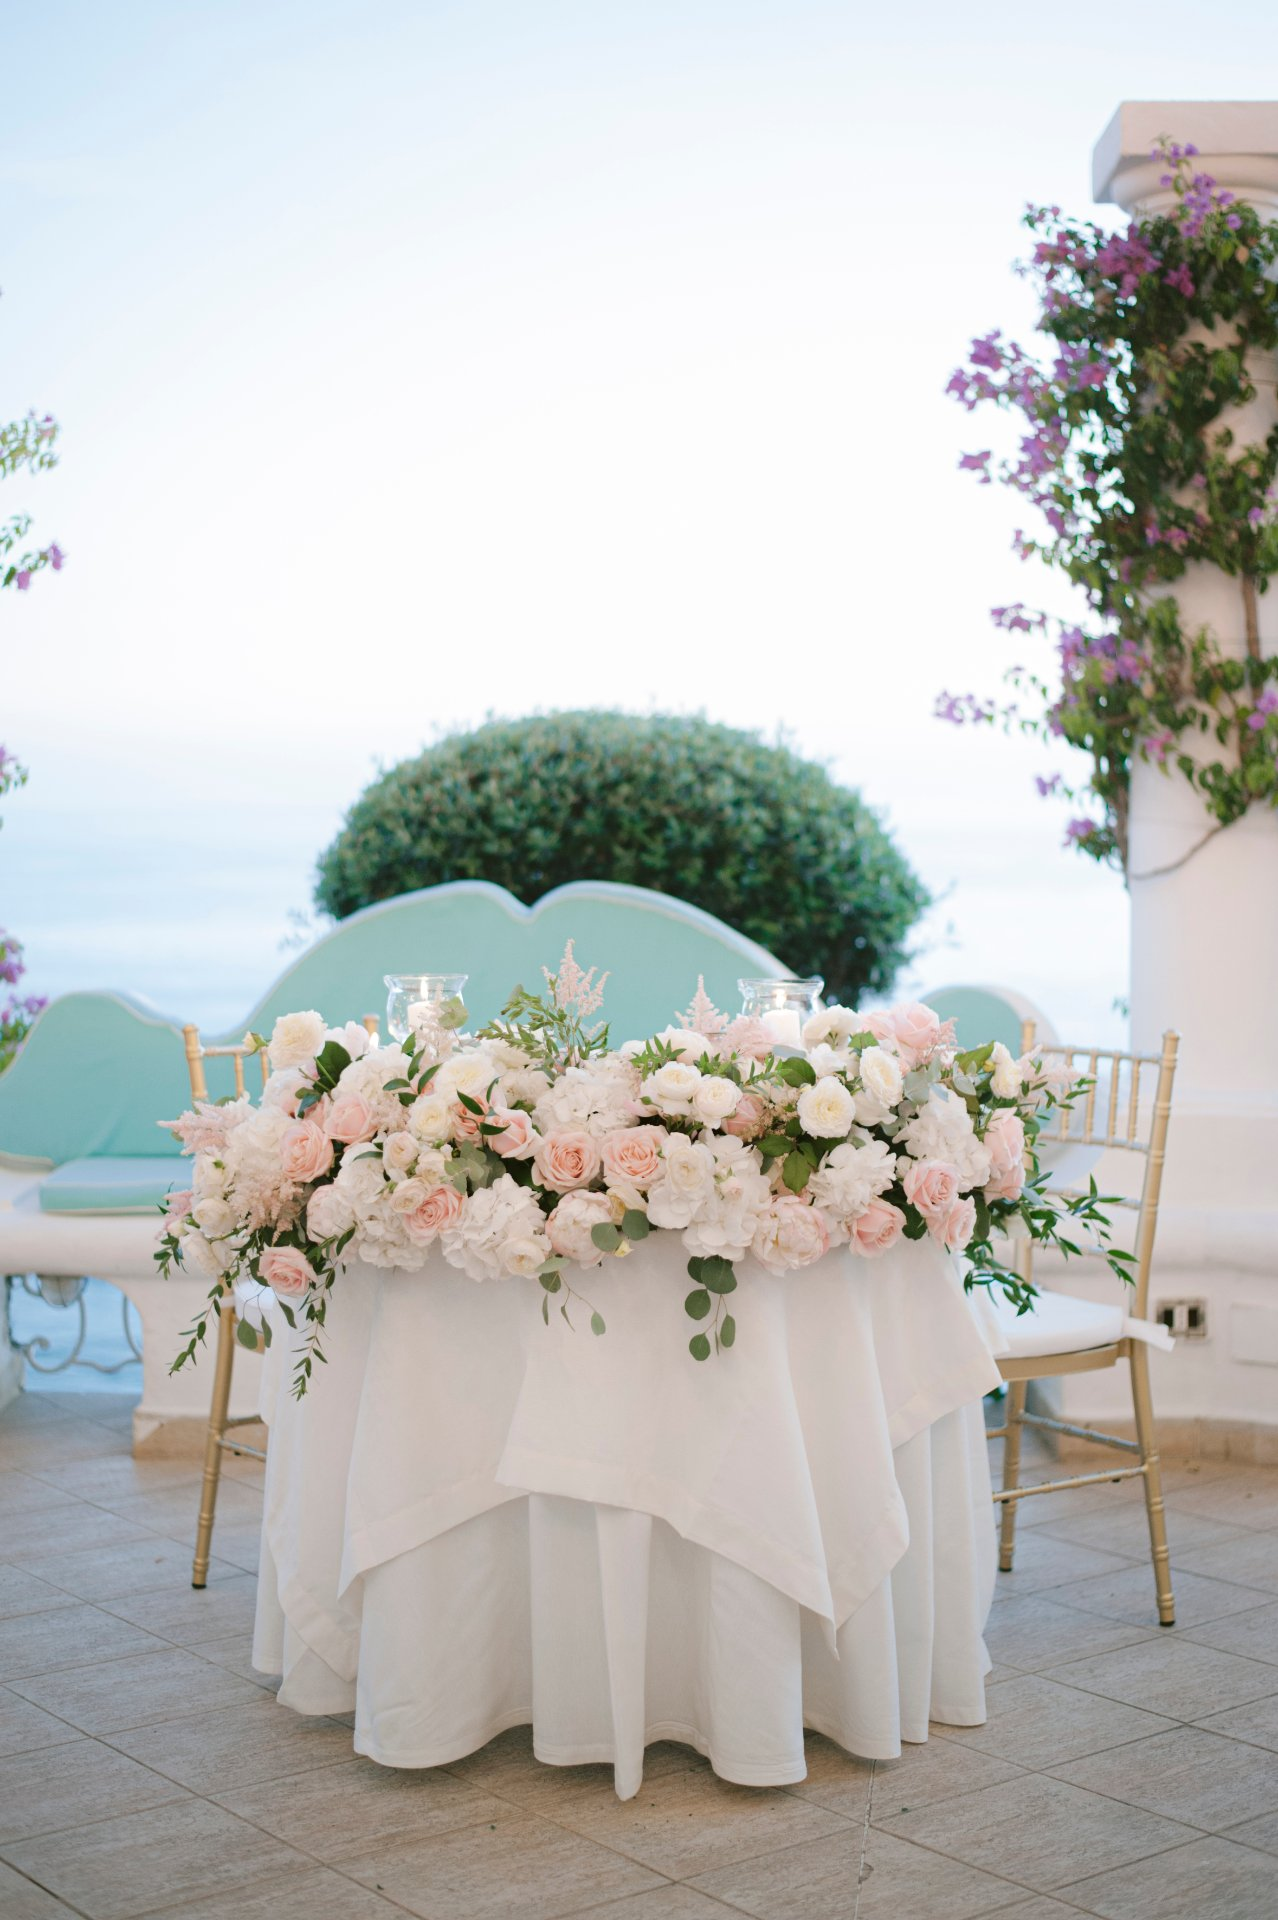 destination-wedding-positano-bride-groom-table